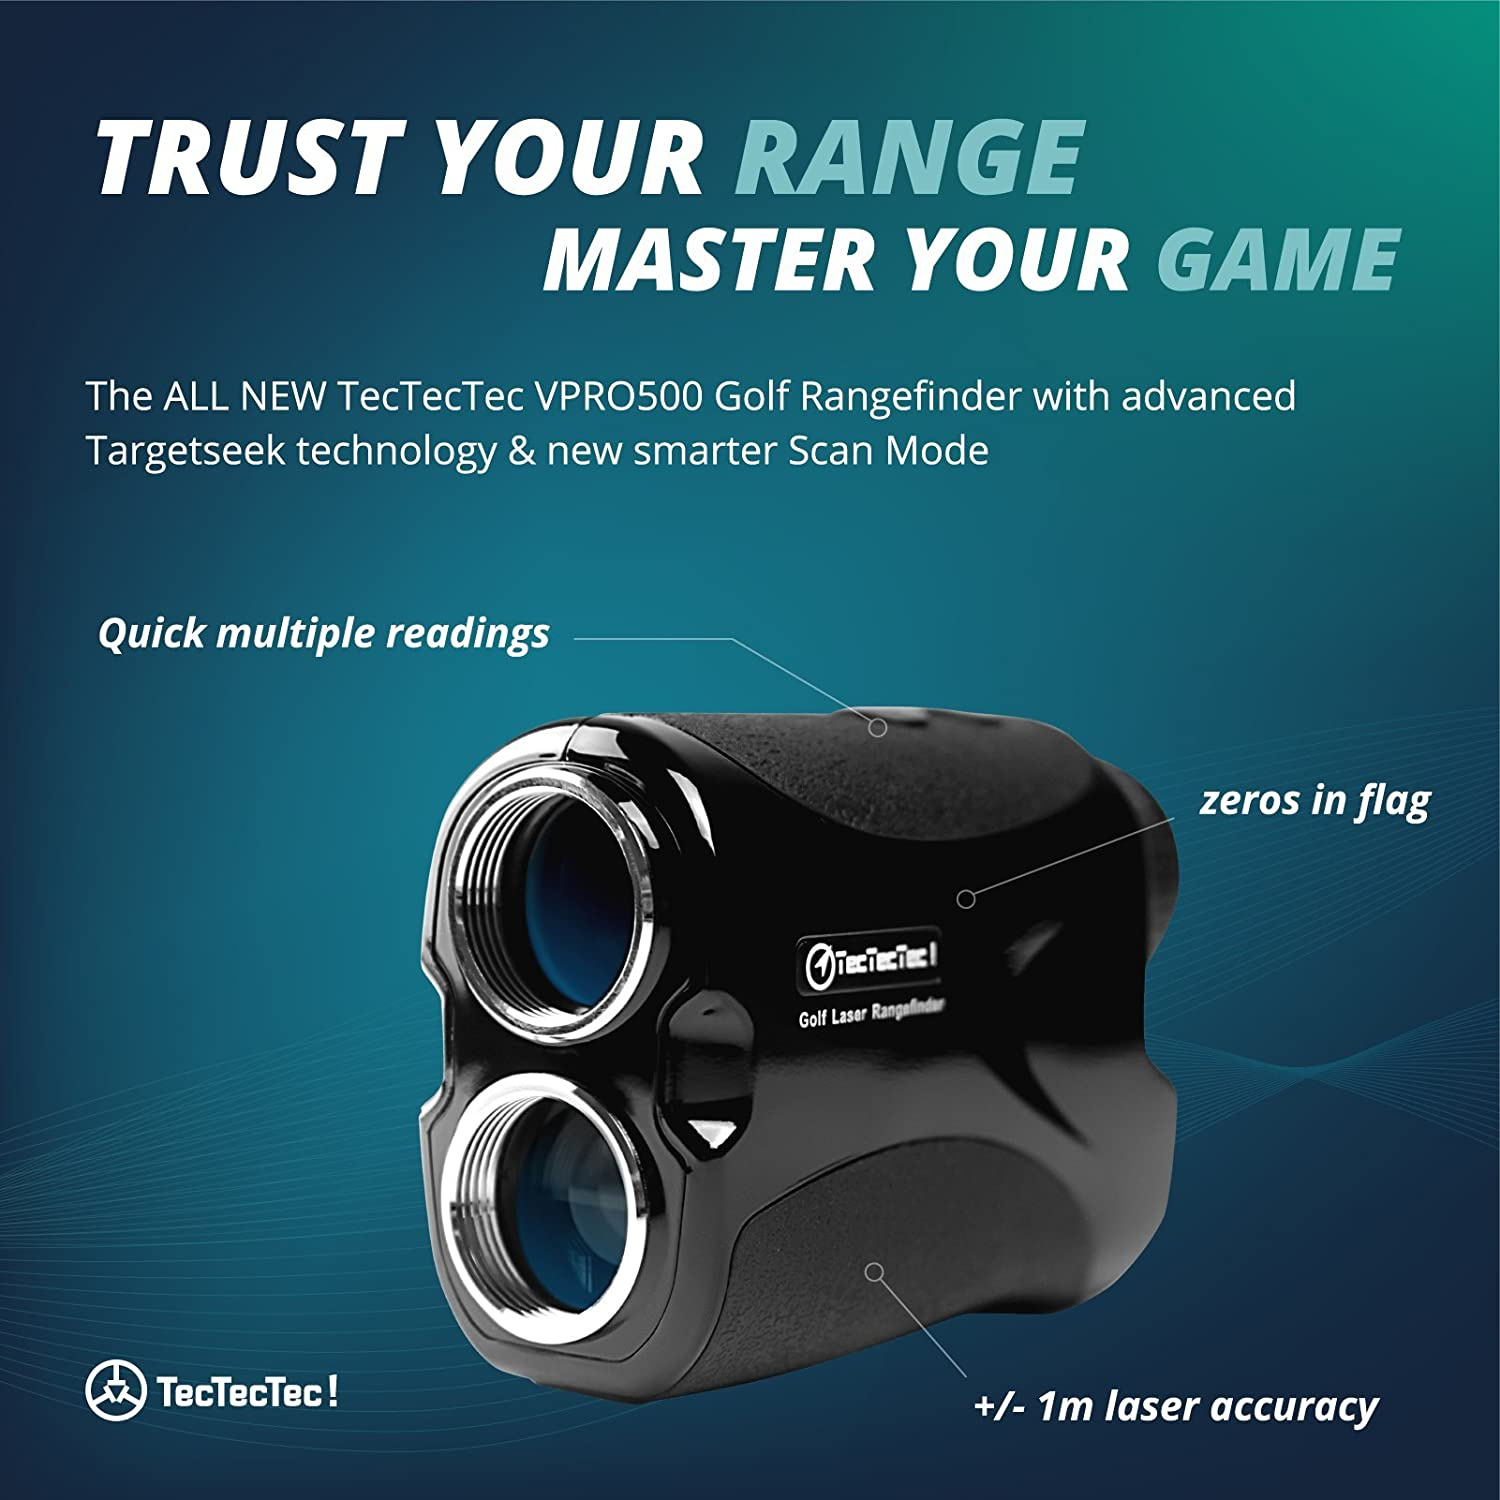 read-my-review-of-tectectec-vpro500-golf-rangefinder-2